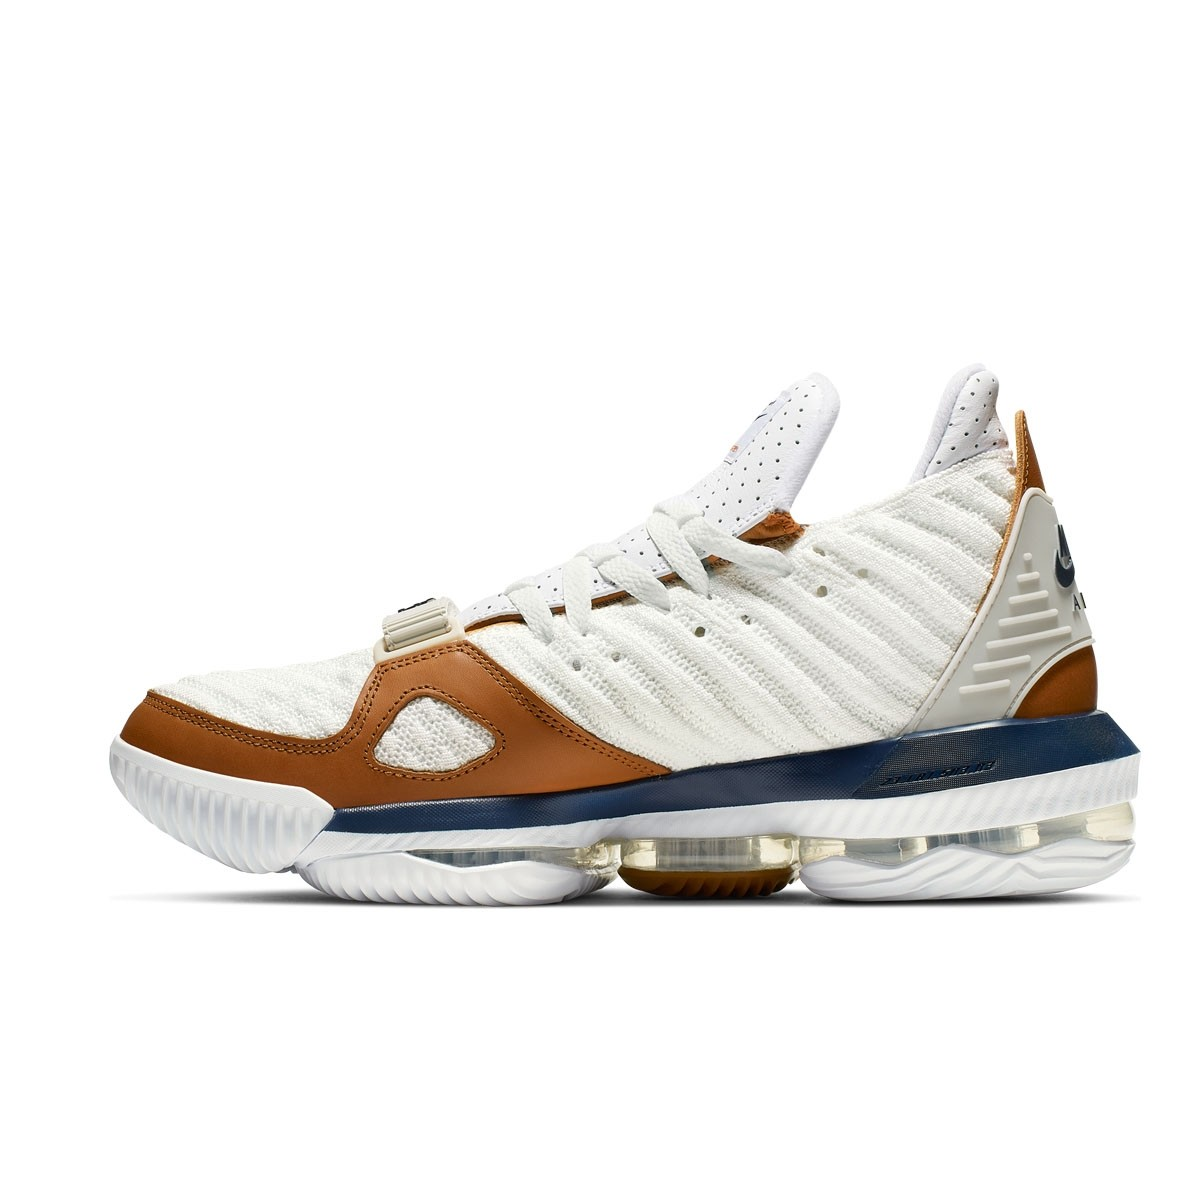 81ee7c86a1a9a Buy Nike Lebron XVI  Air Trainer  Basketball shoes   sneakers